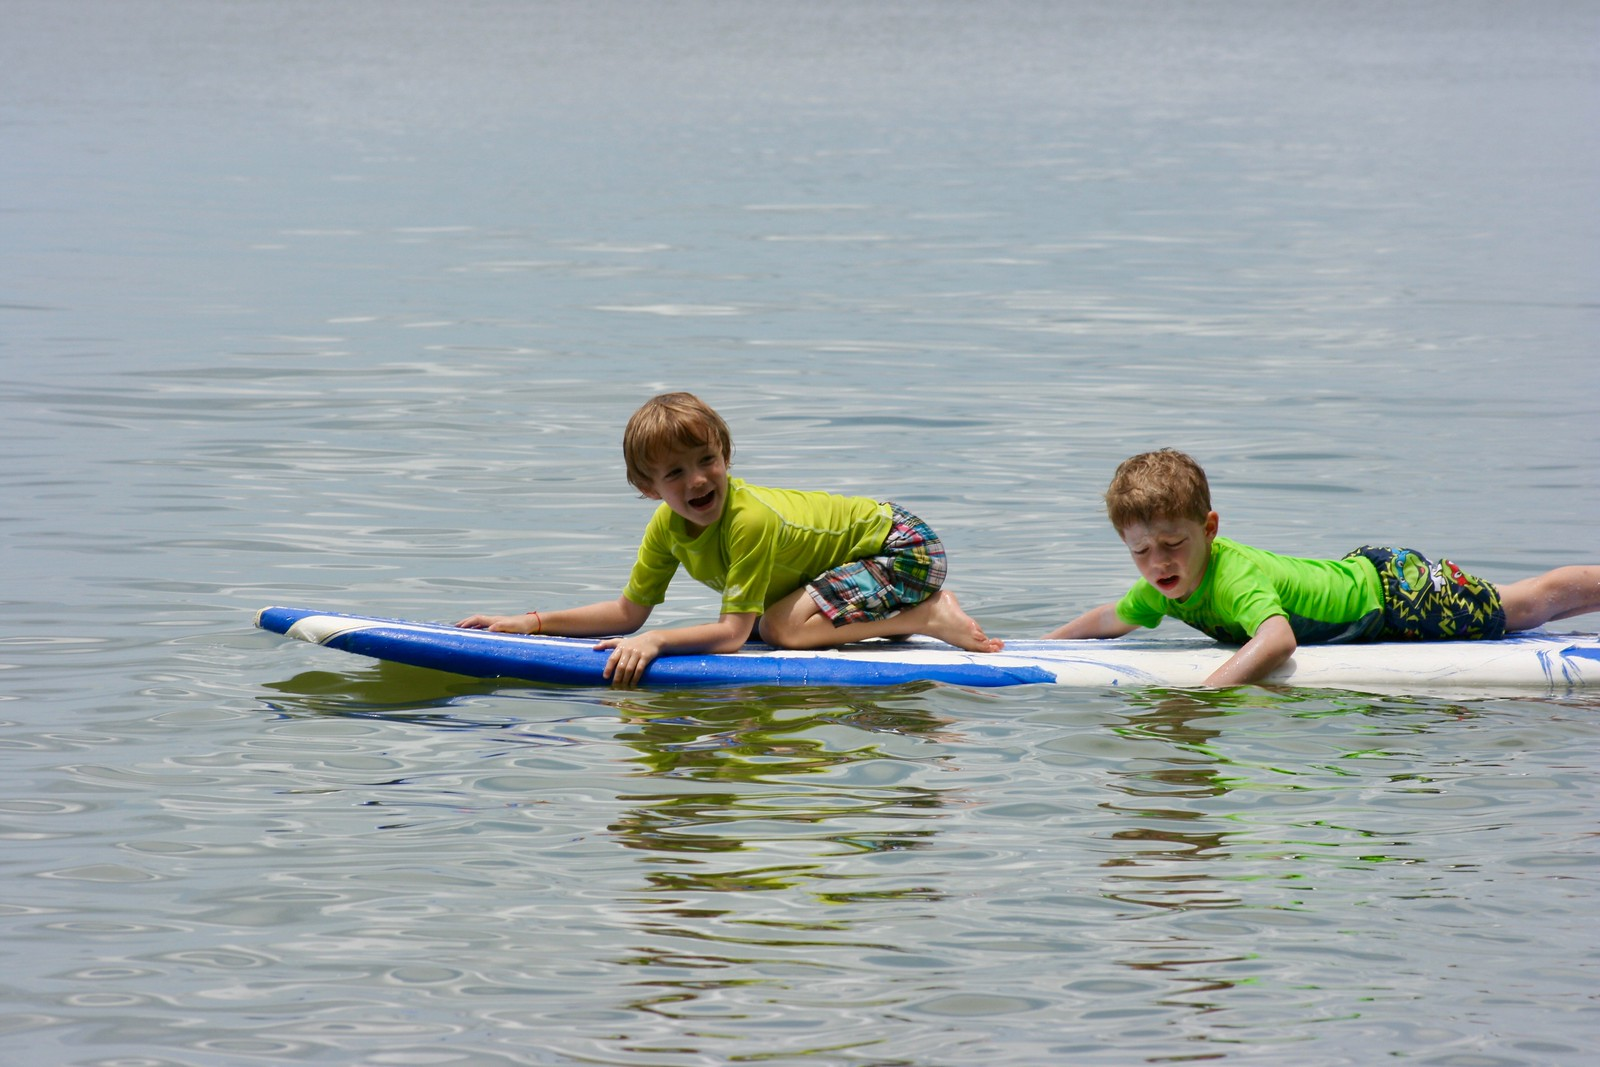 Sometimes our tiniest campers prefer to surf in pairs.